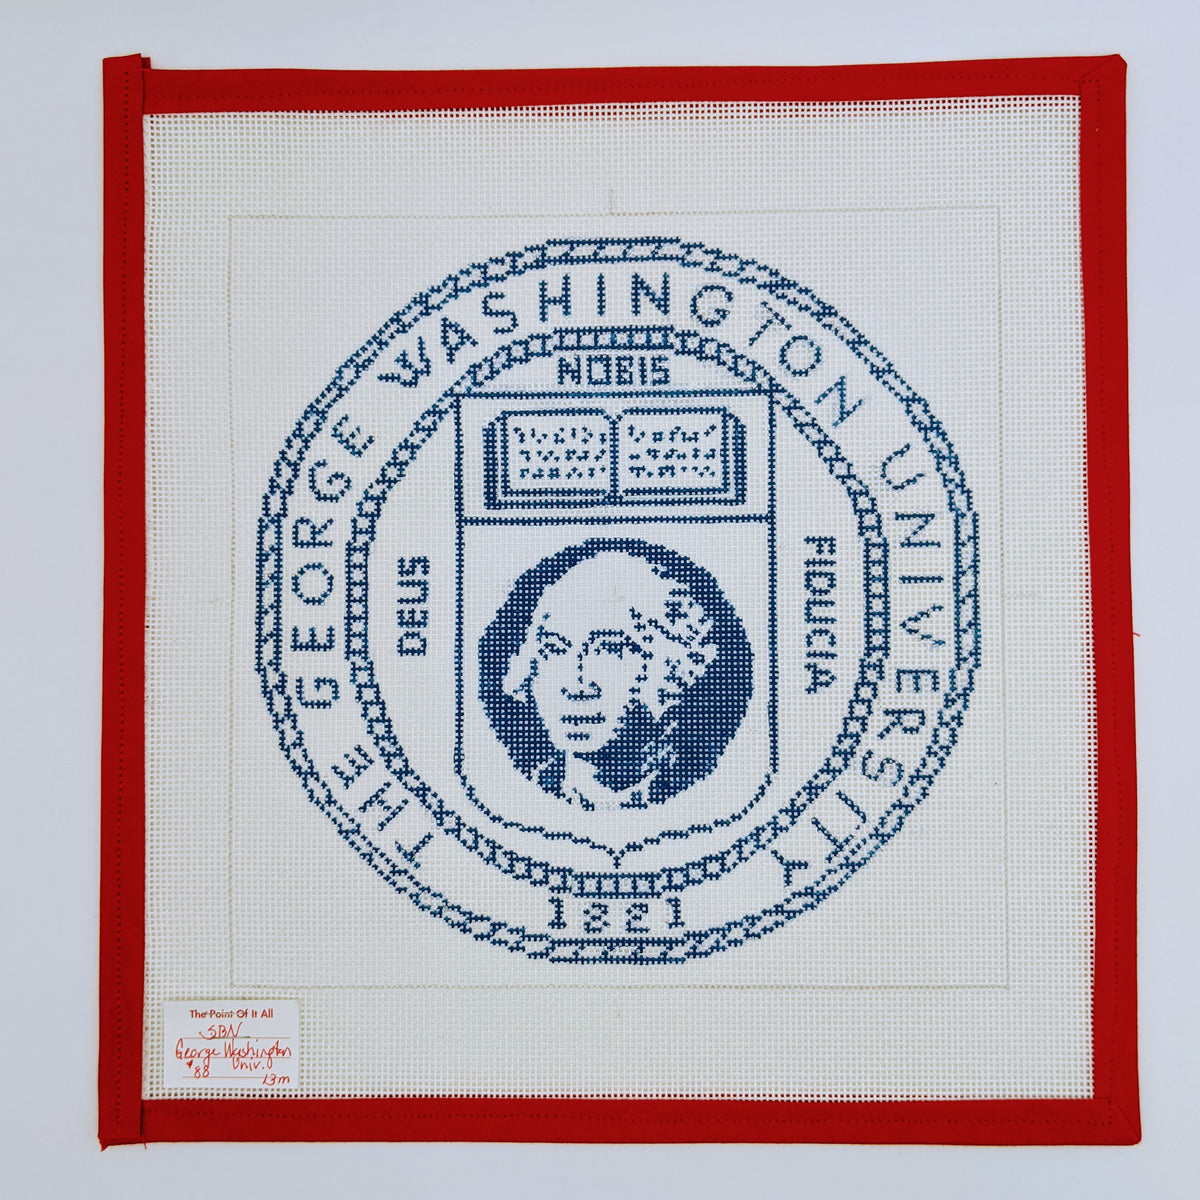 George Washington University seal (blue & white)